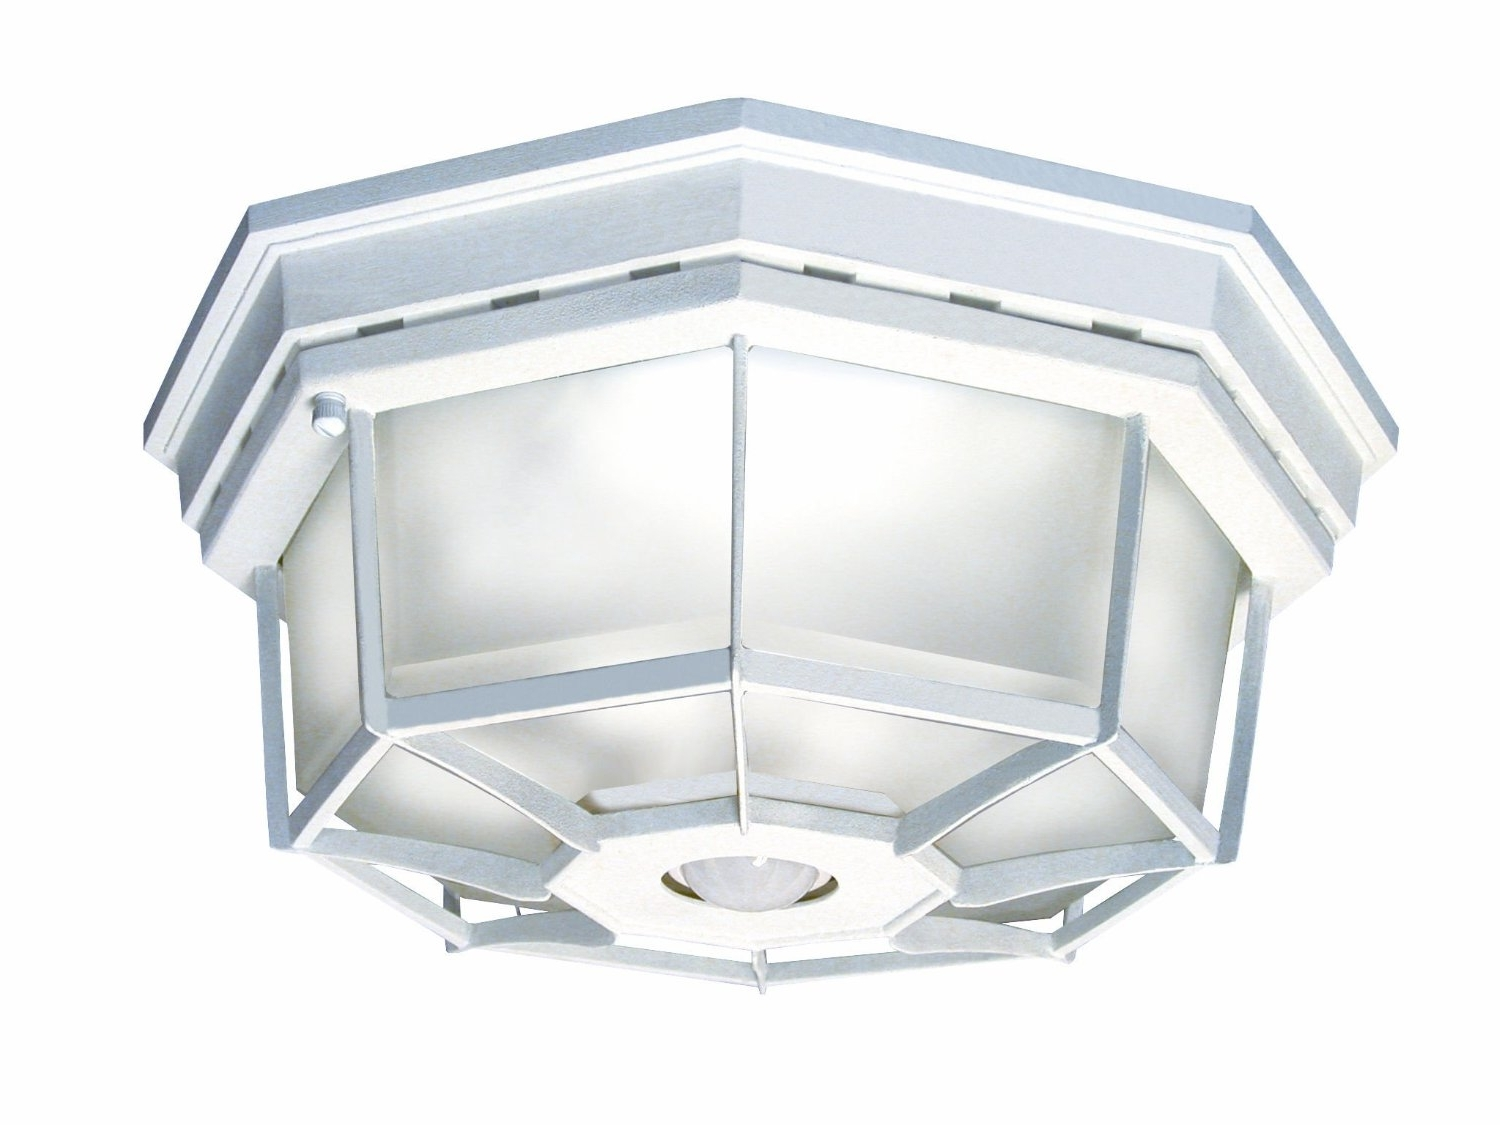 Outdoor Ceiling Light Motion Sensor (View 11 of 20)